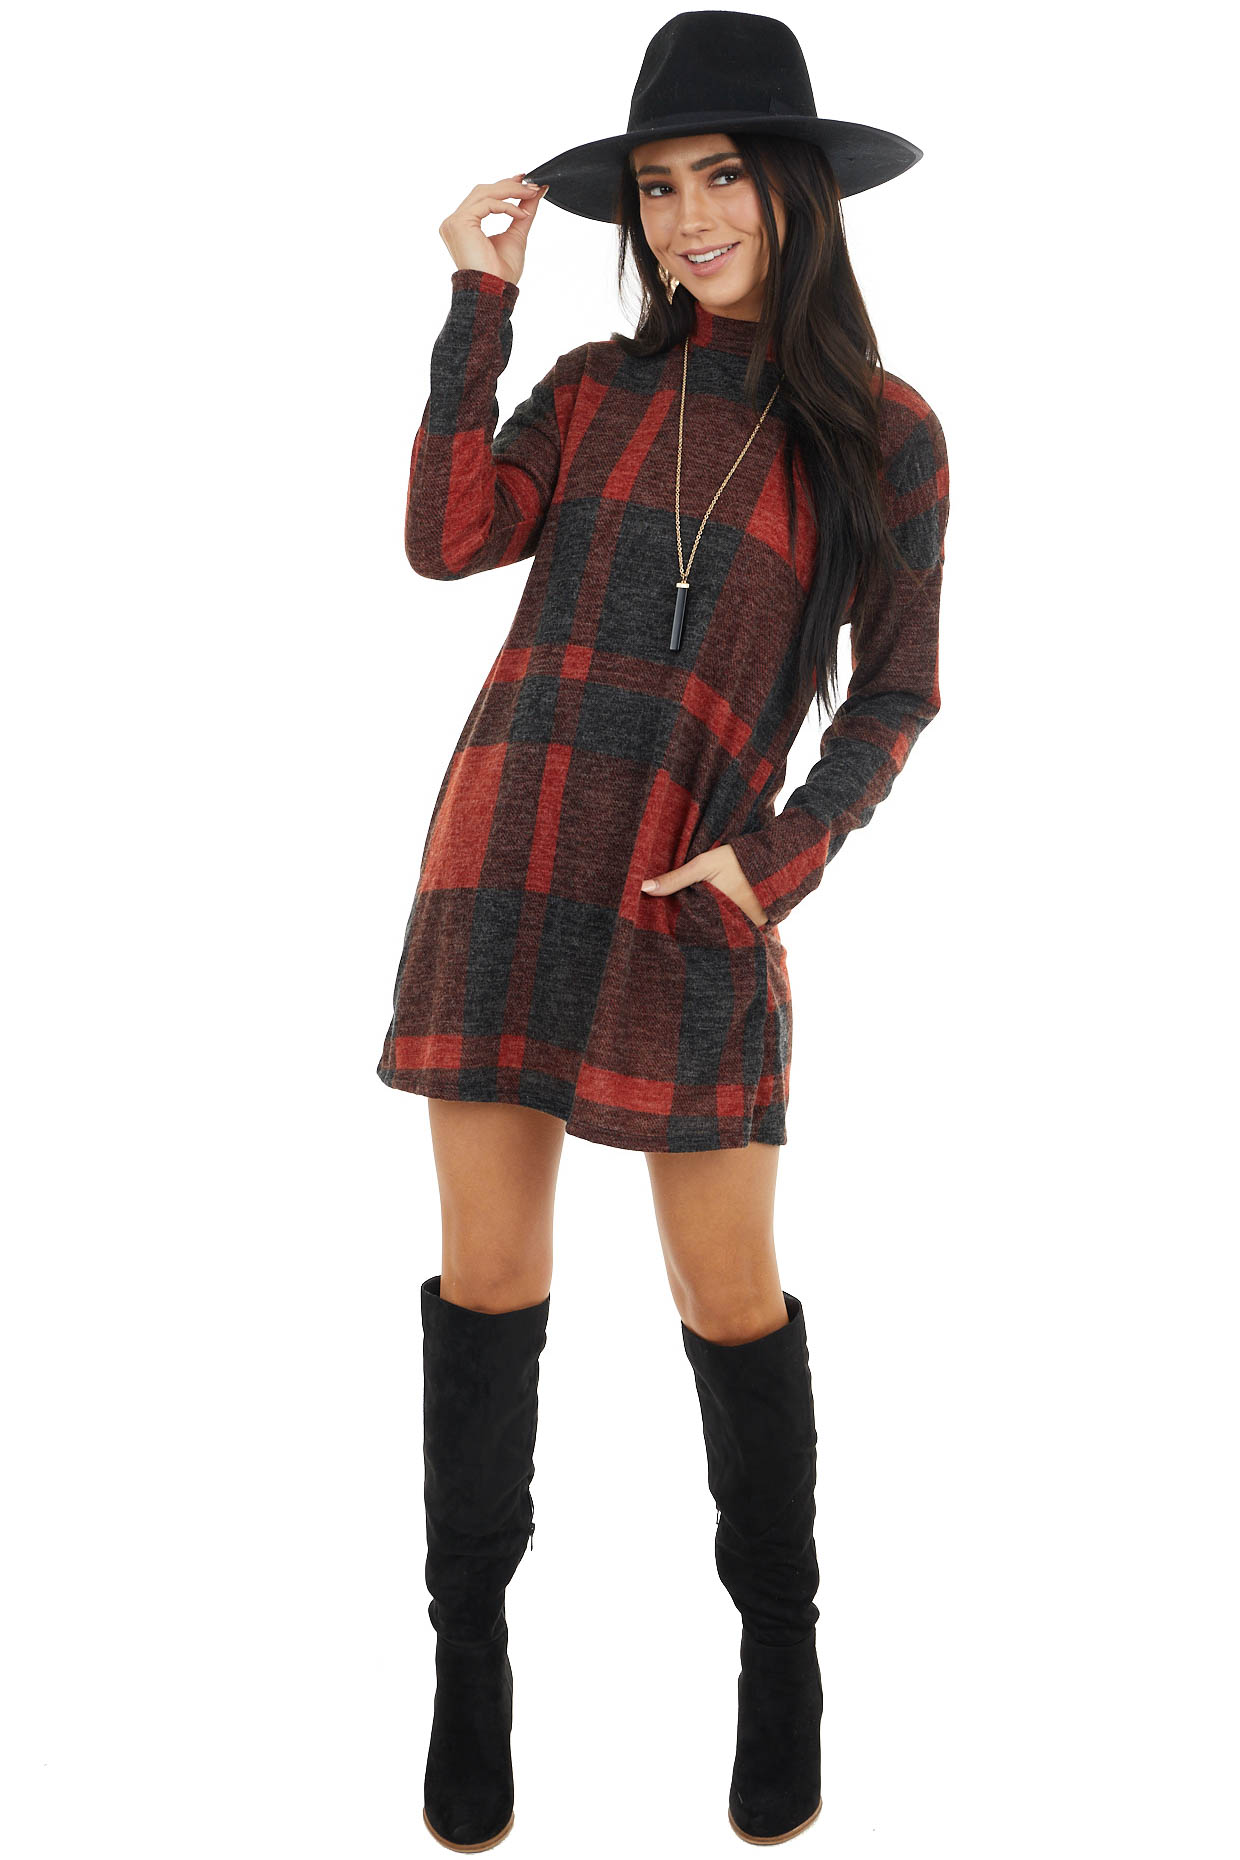 Black and Maroon Buffalo Plaid Mini Dress with High Neckline